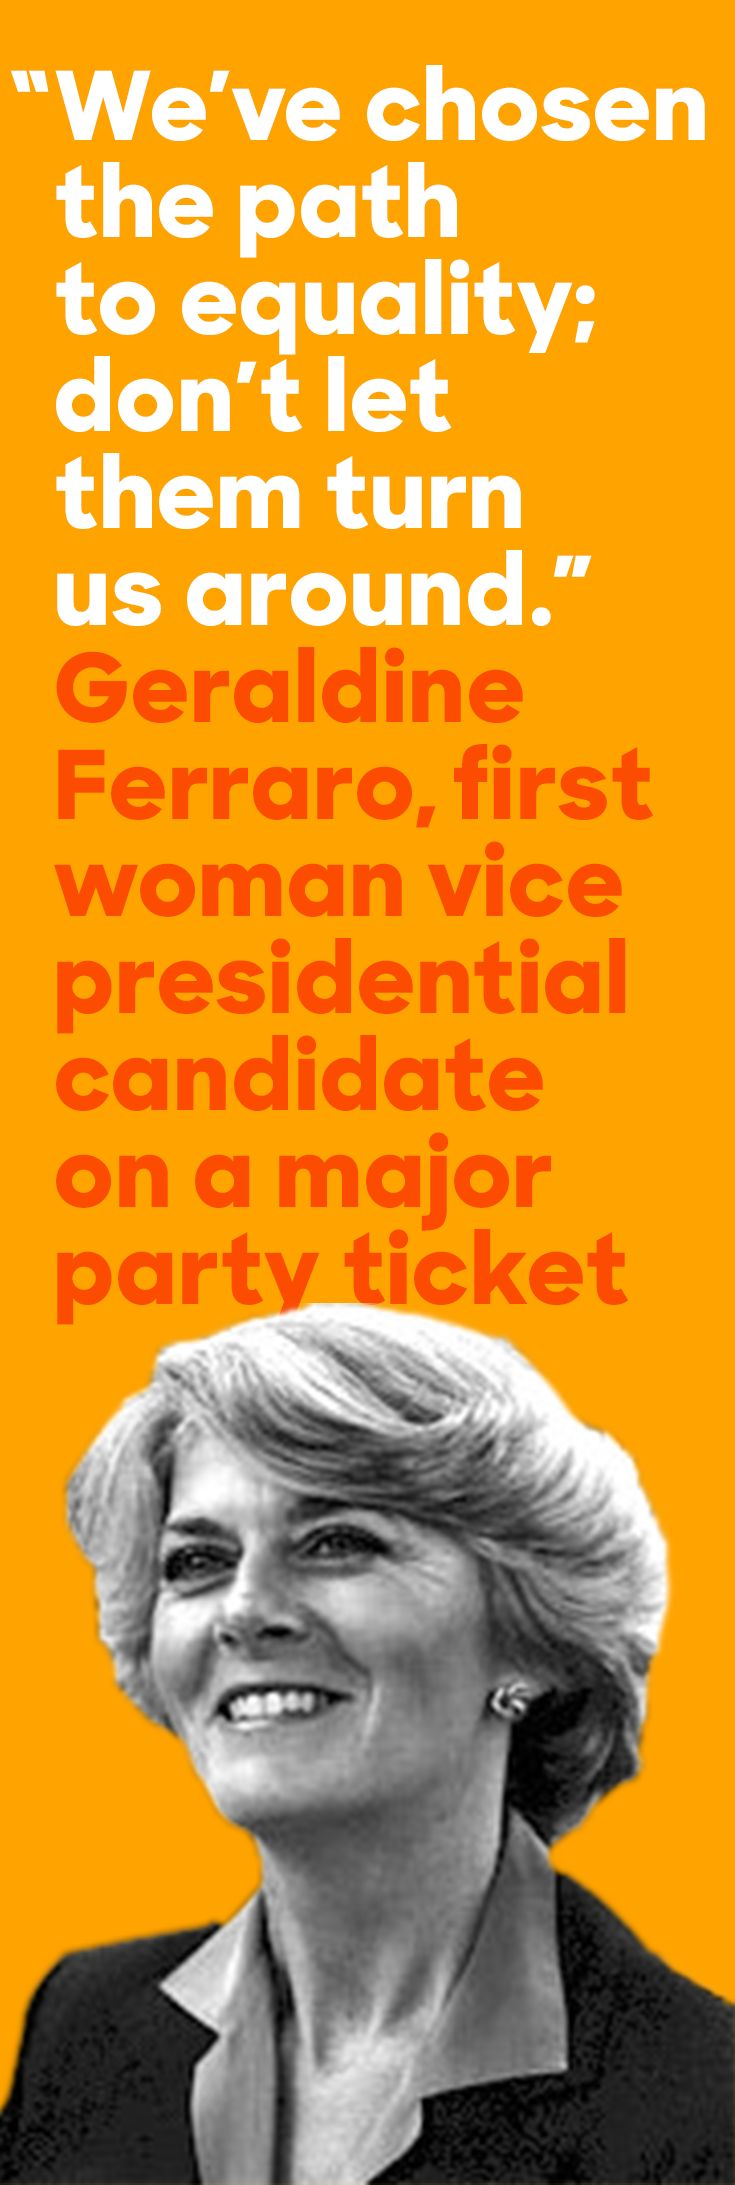 On this day in '84, the Democratic Party nominated Geraldine Ferraro—the first woman VP nominee on a major party ticket.